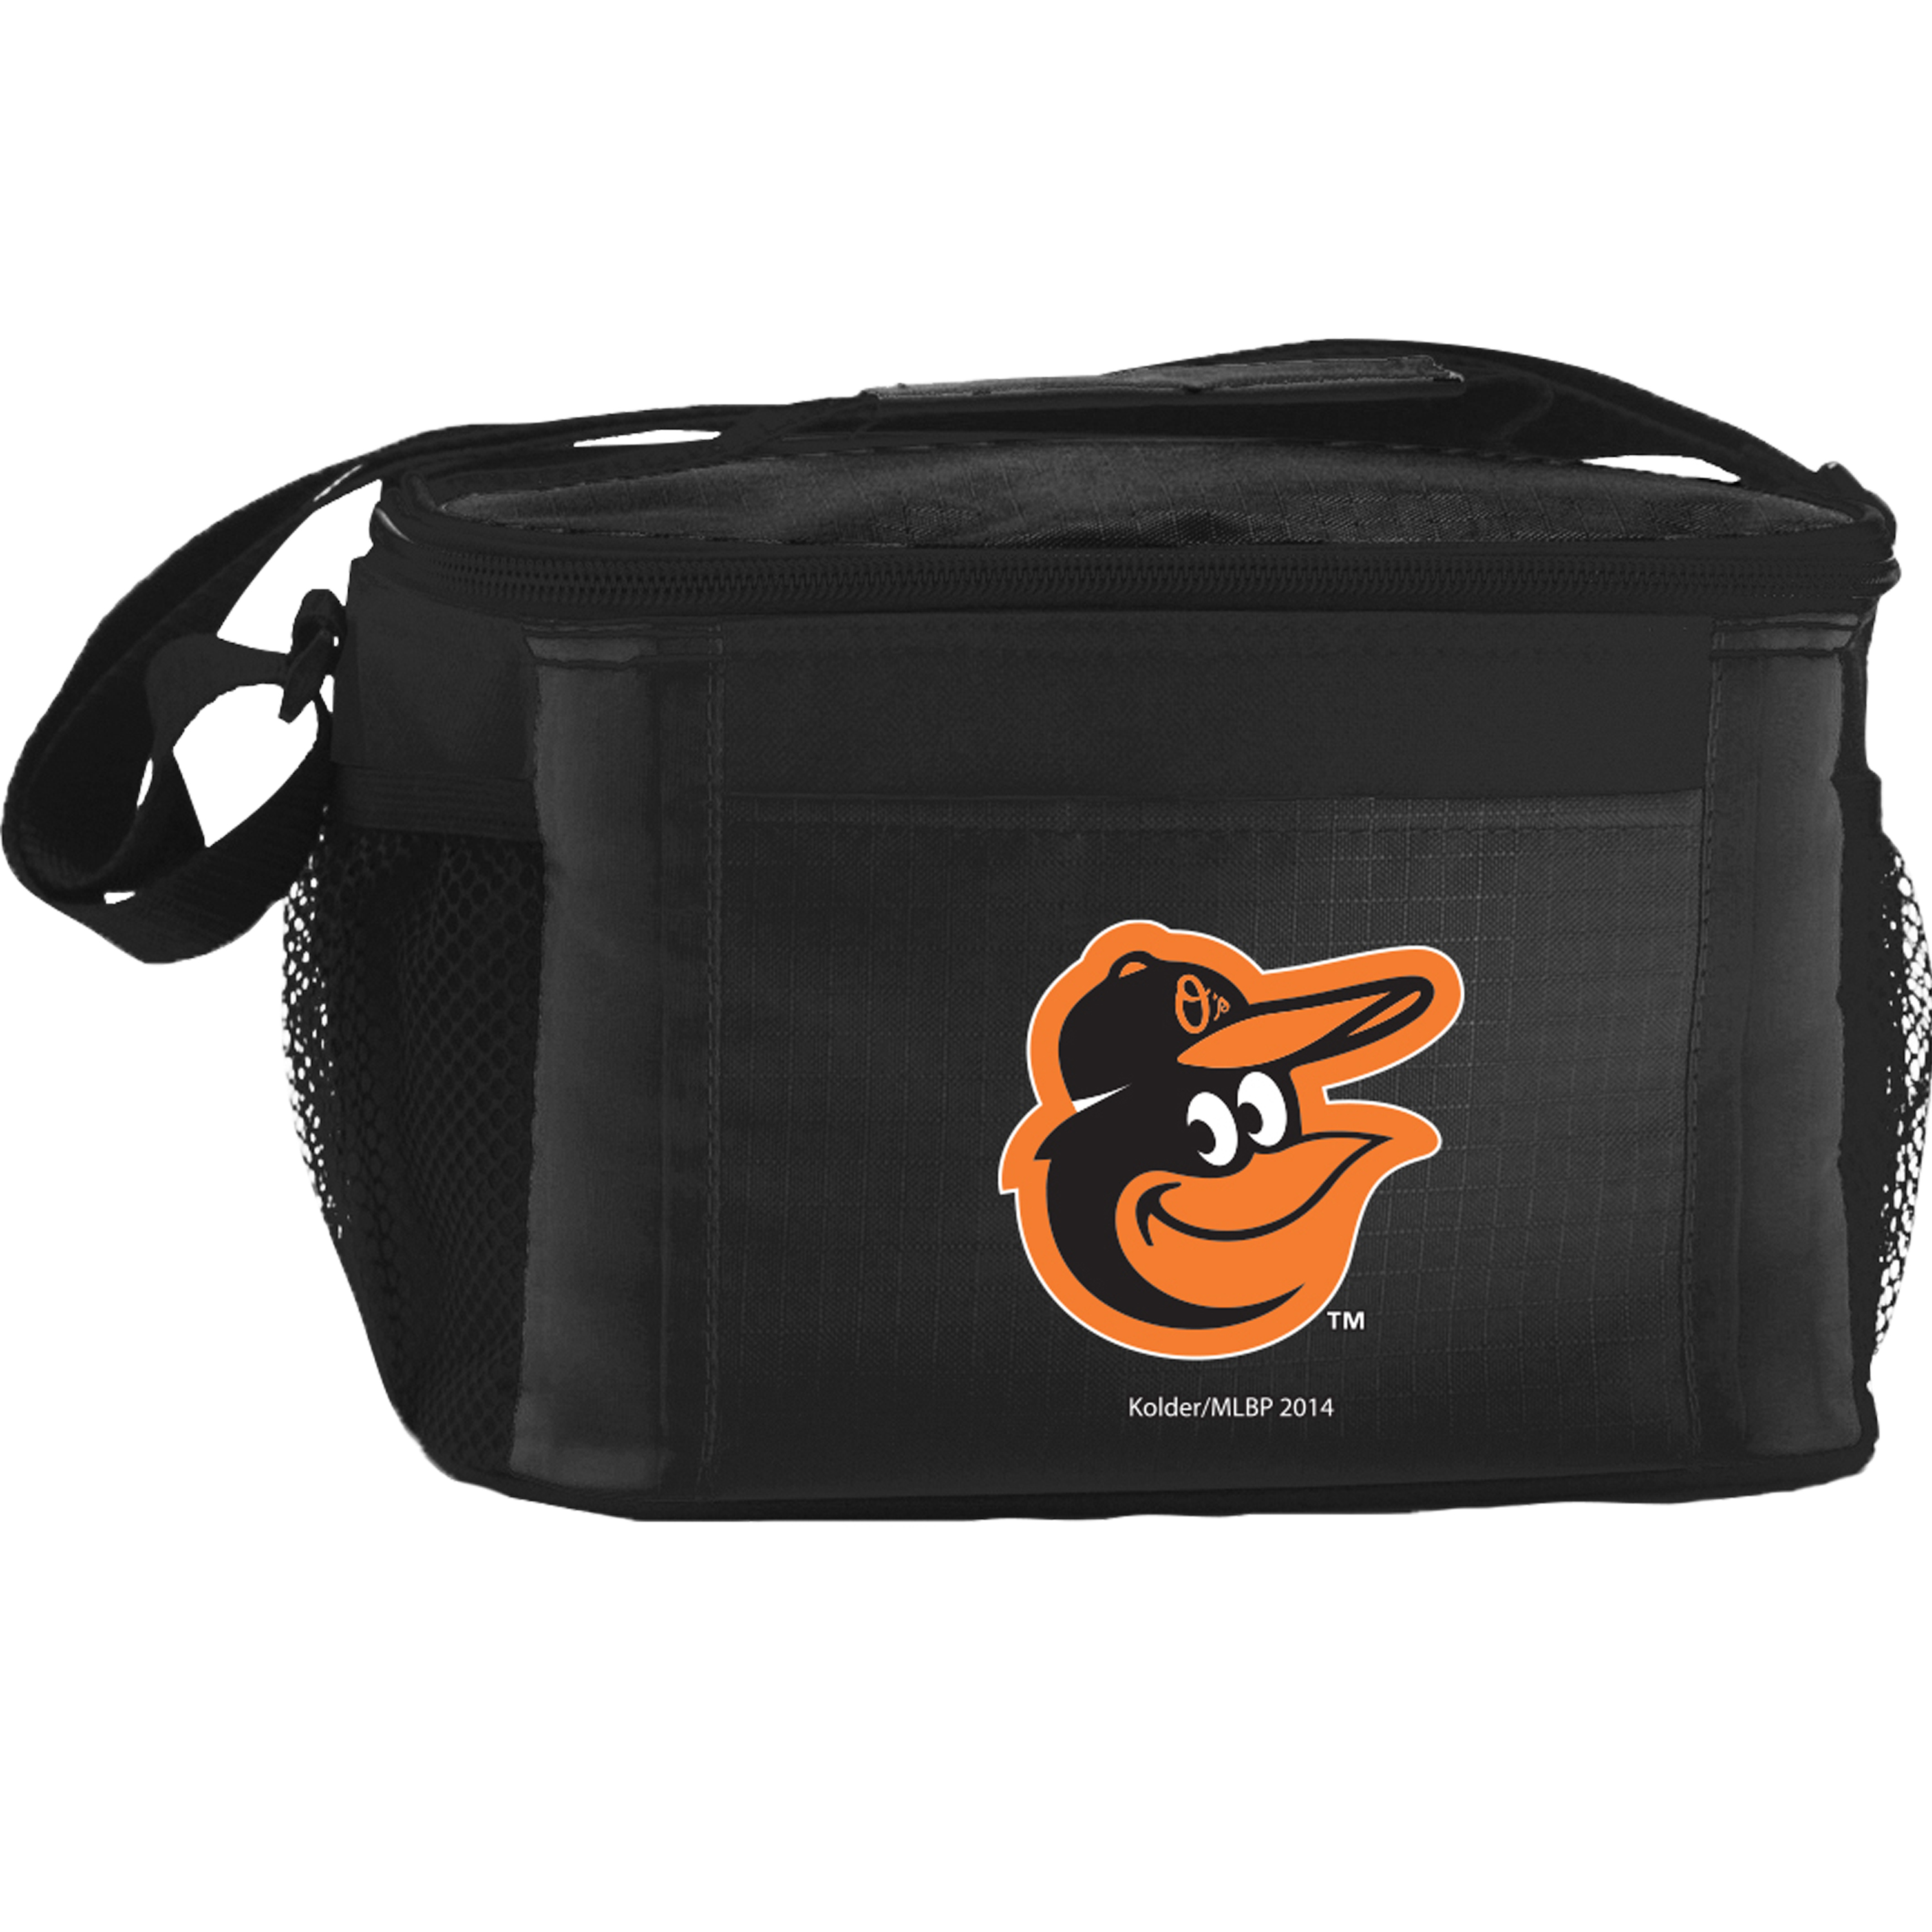 Baltimore Orioles - 6pk Cooler Bag